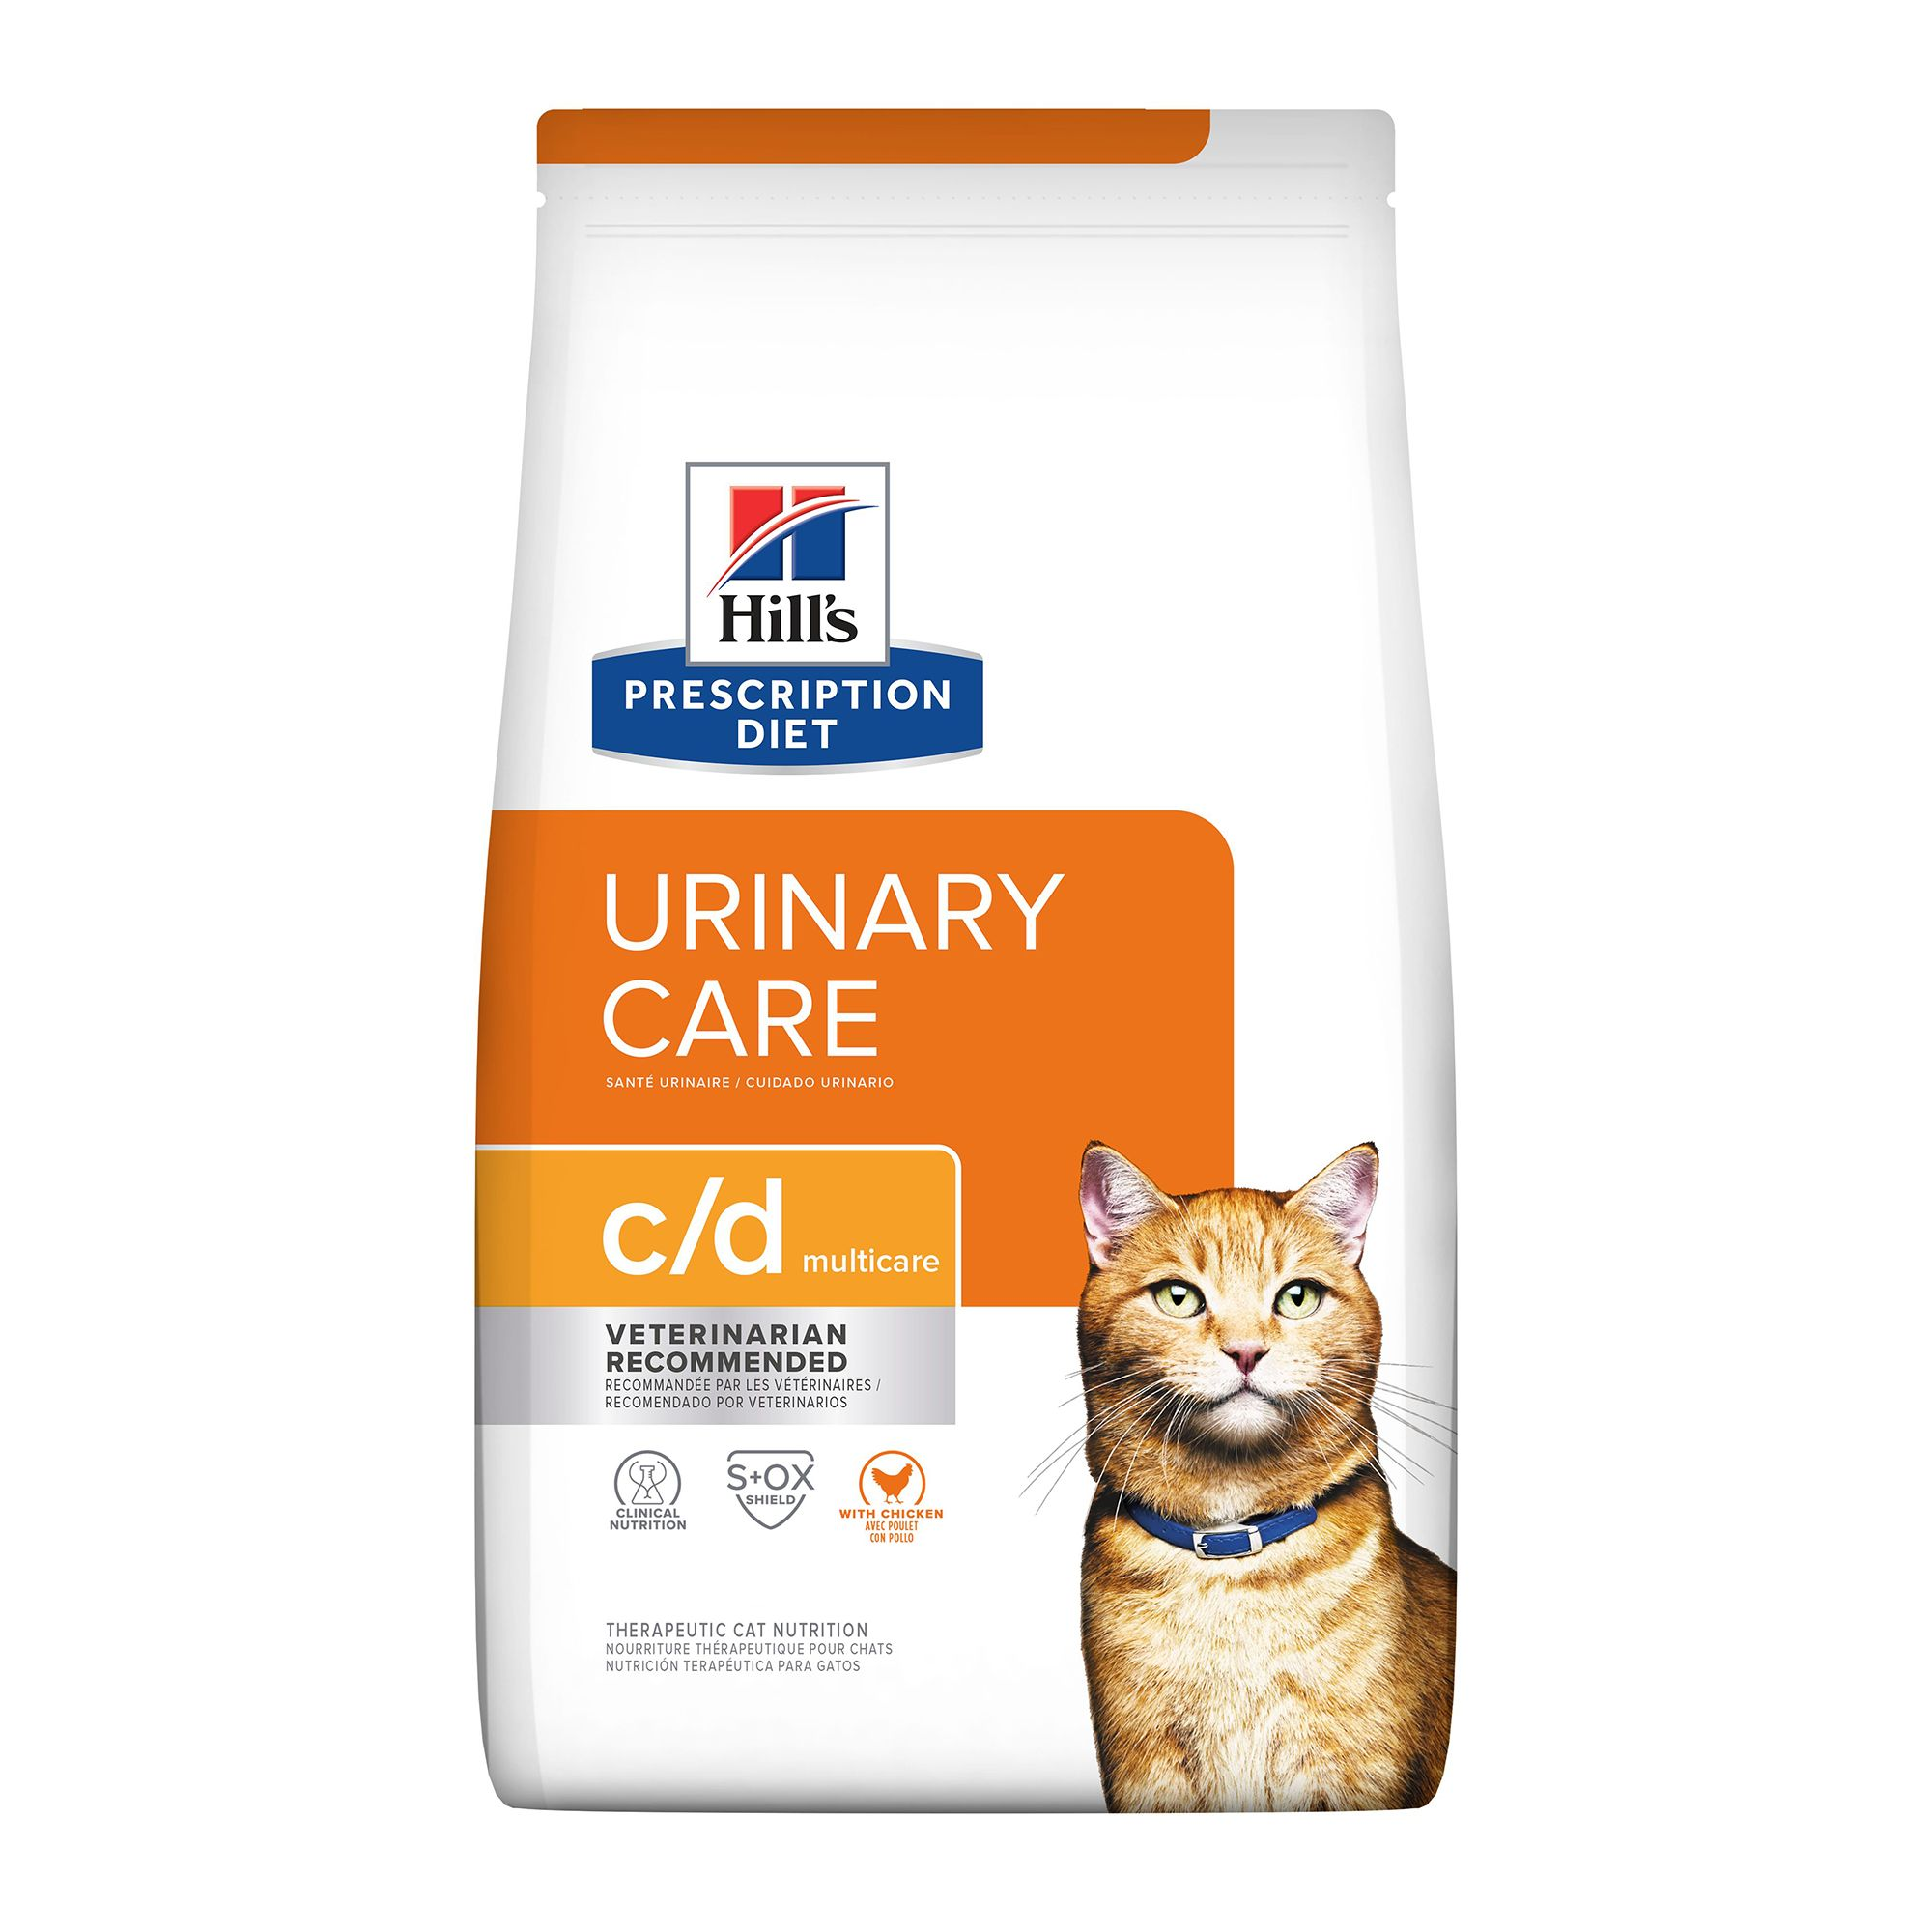 Hill's Prescription Diet c/d Multicare Bladder Health Adult Cat Food size: 4 Lb 5071879